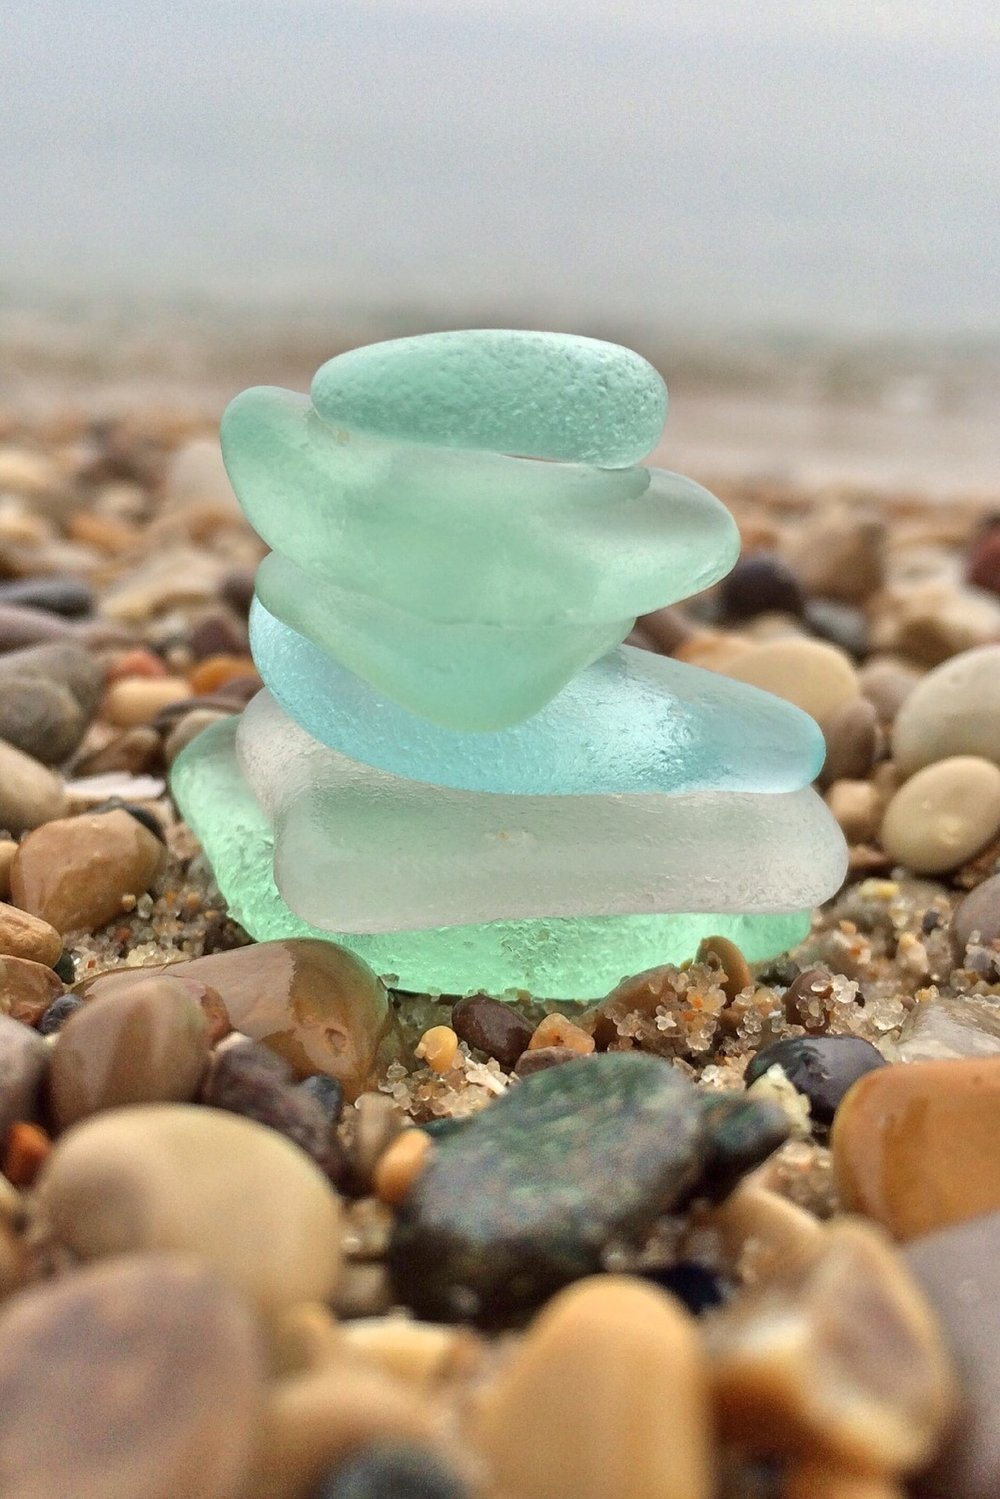 Lovely seafoam green glass is most commonly attributed to pre-1960's Coca-Cola bottles and other soft drinks like Dr. Pepper and Mr. Cola. The color falls between common and rare as it is no longer widely used.